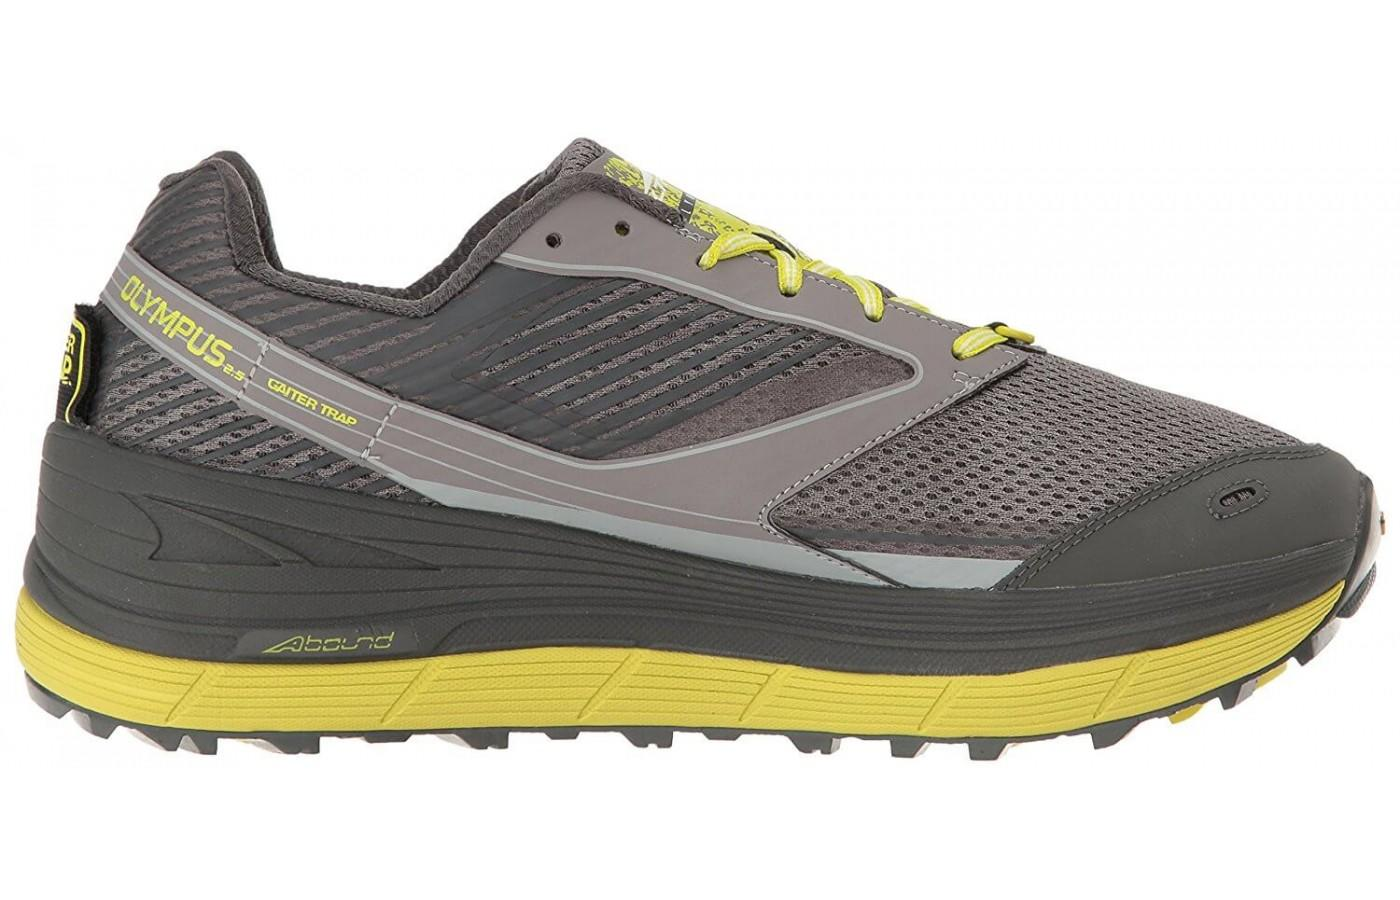 Altra Olympus 2.5 has a 0mm drop